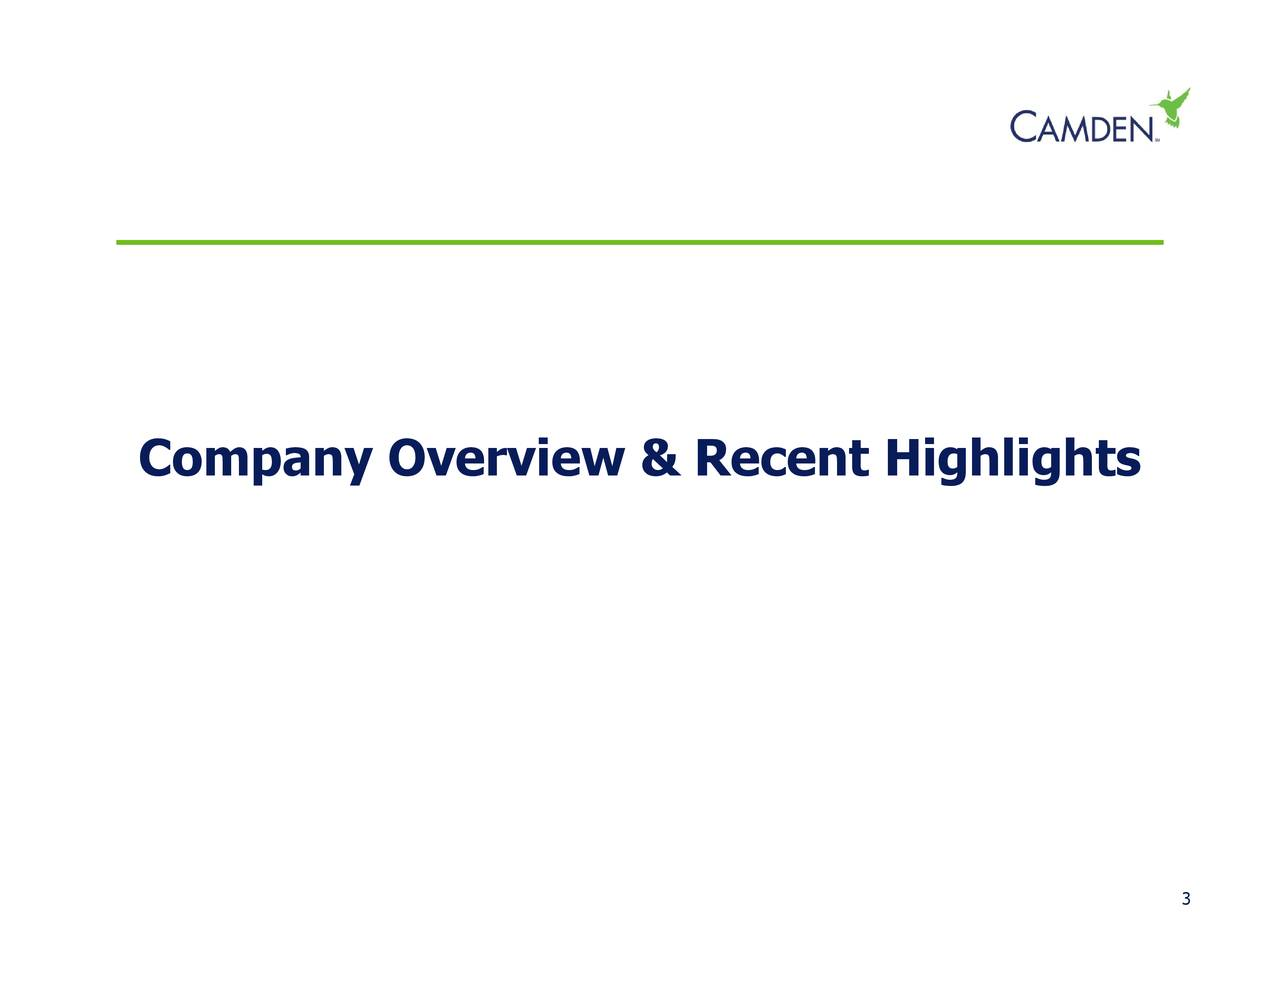 Company Overview & Recent Highlights